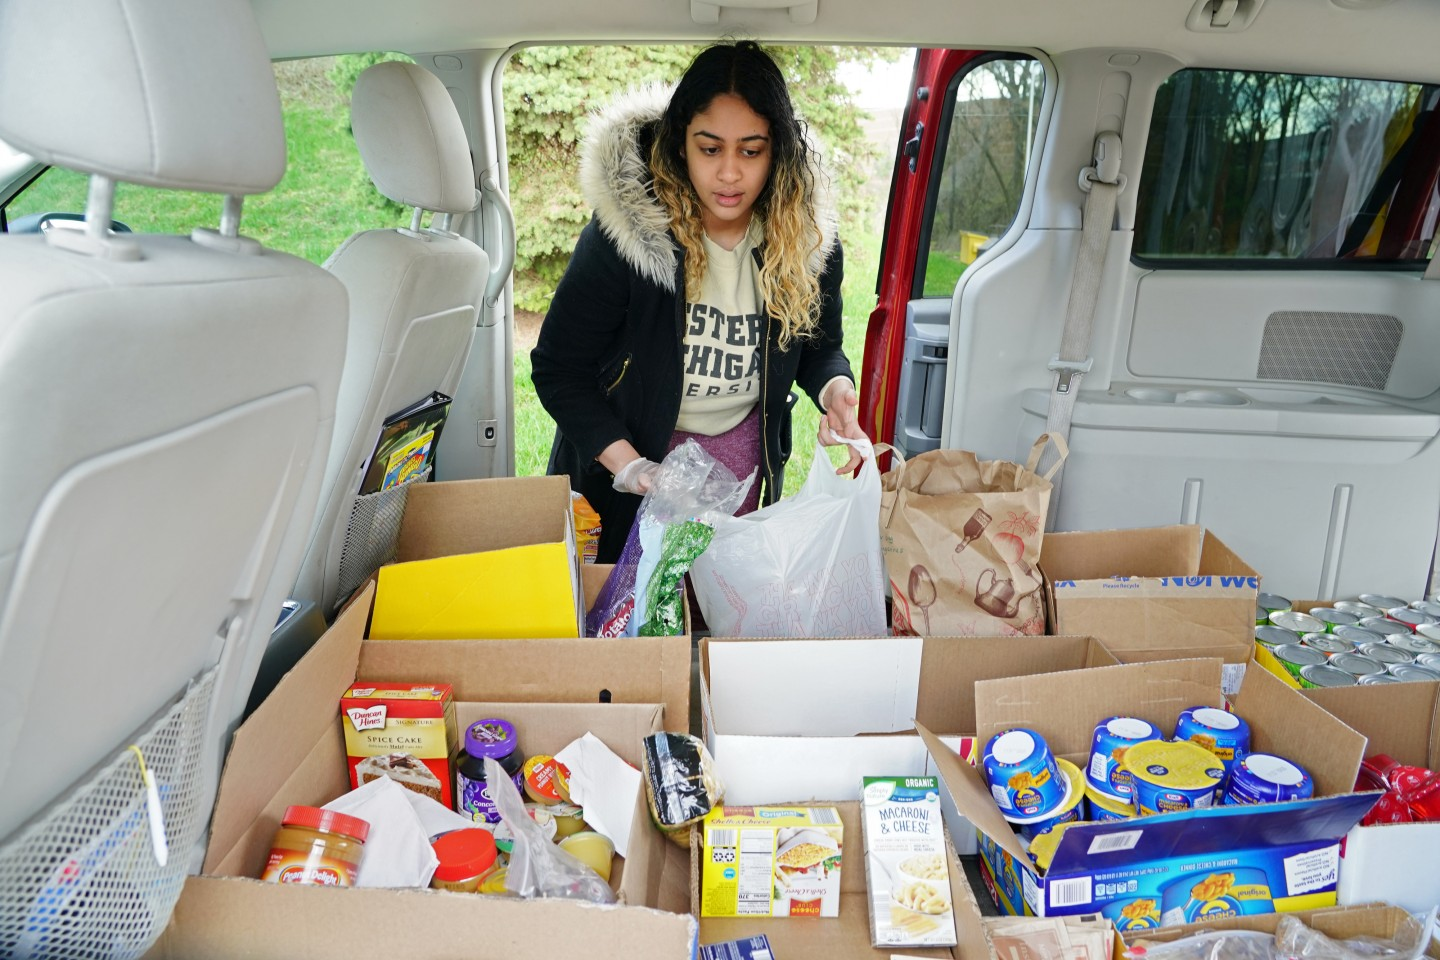 A student collects donated groceries from a van.